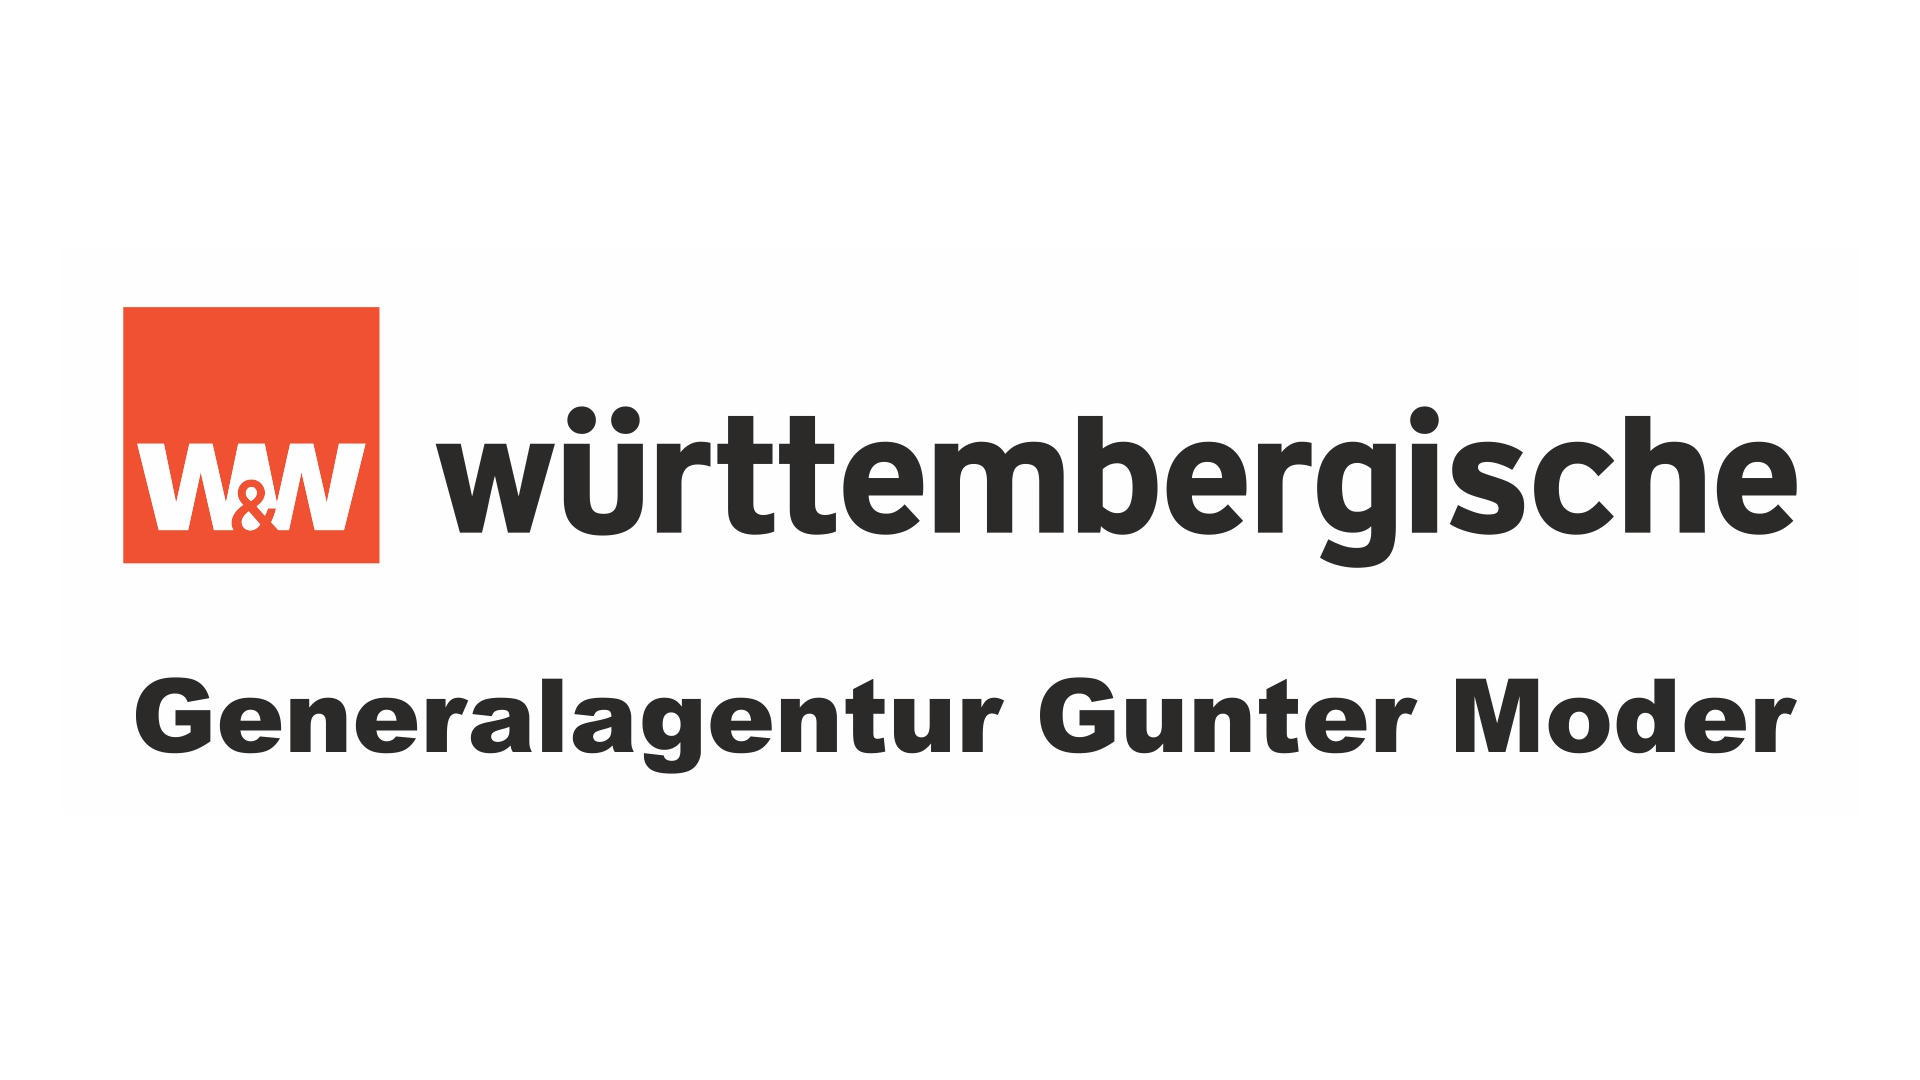 Württembergische